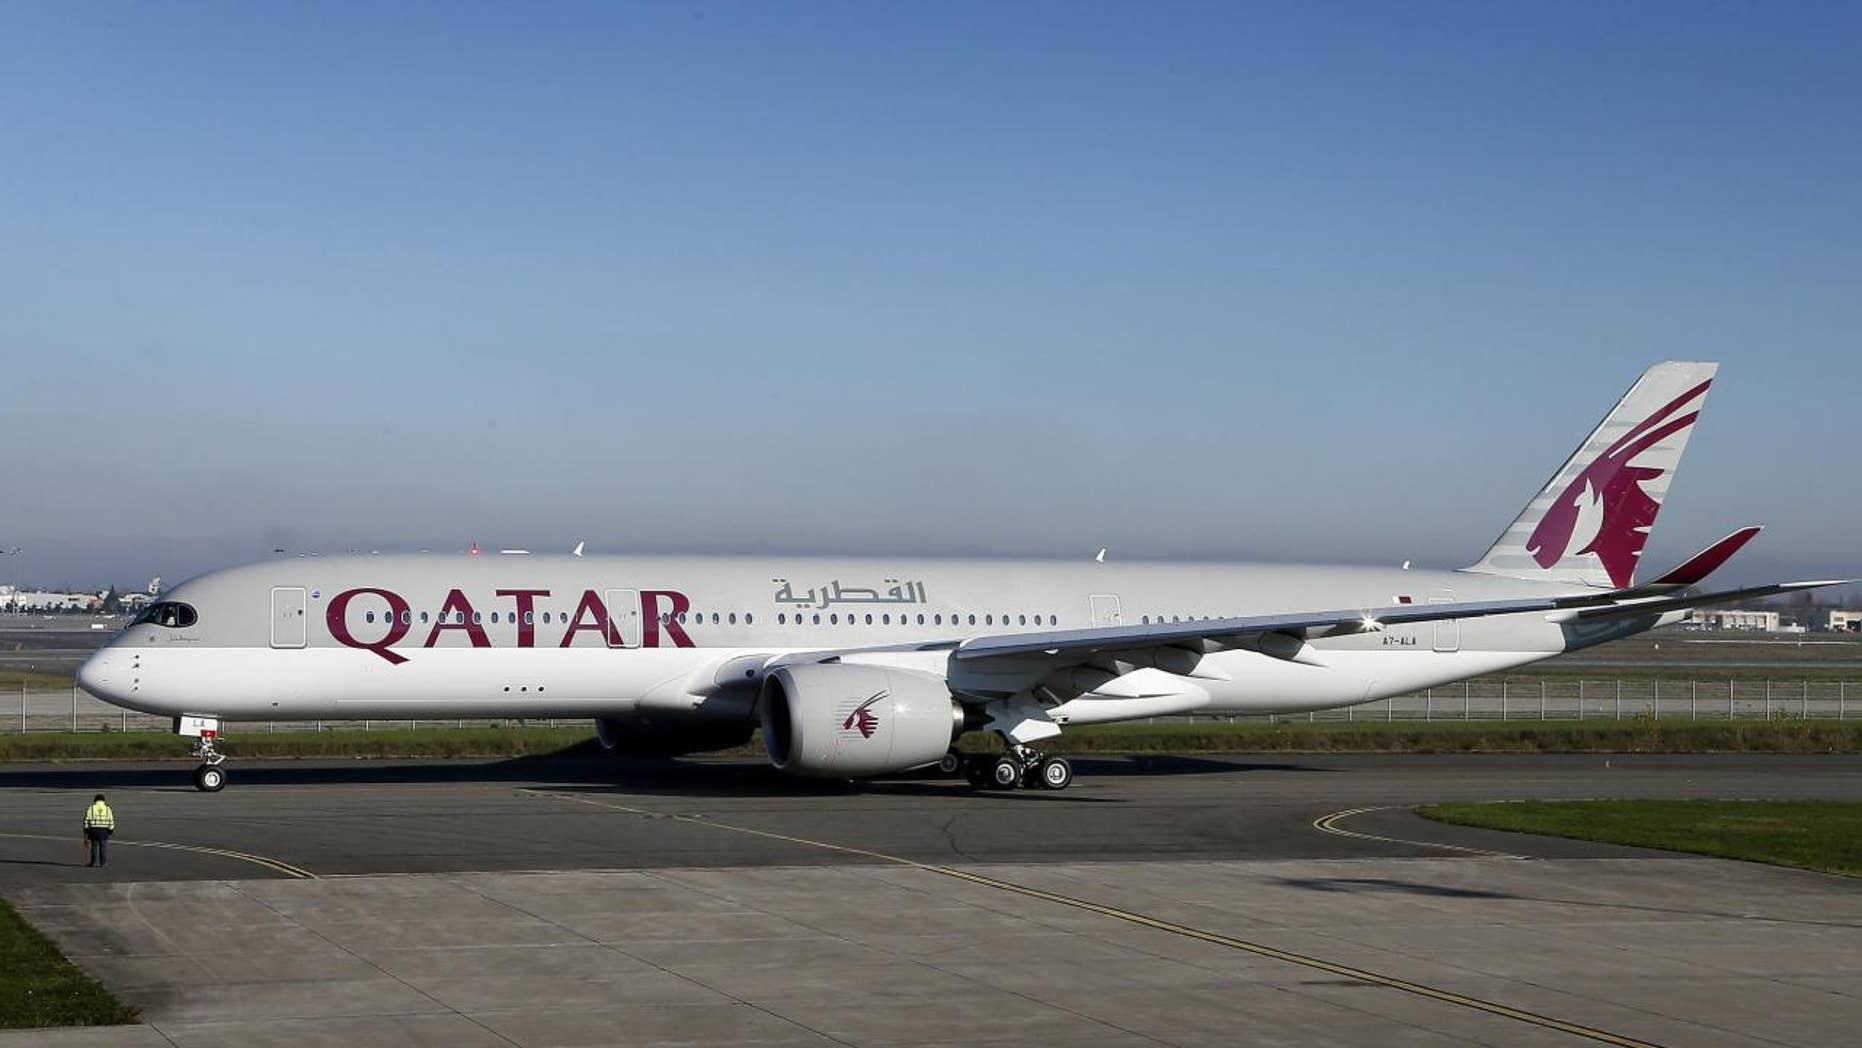 Qatar Airways debuted its newest Airbus A350 in Dec. 2014.